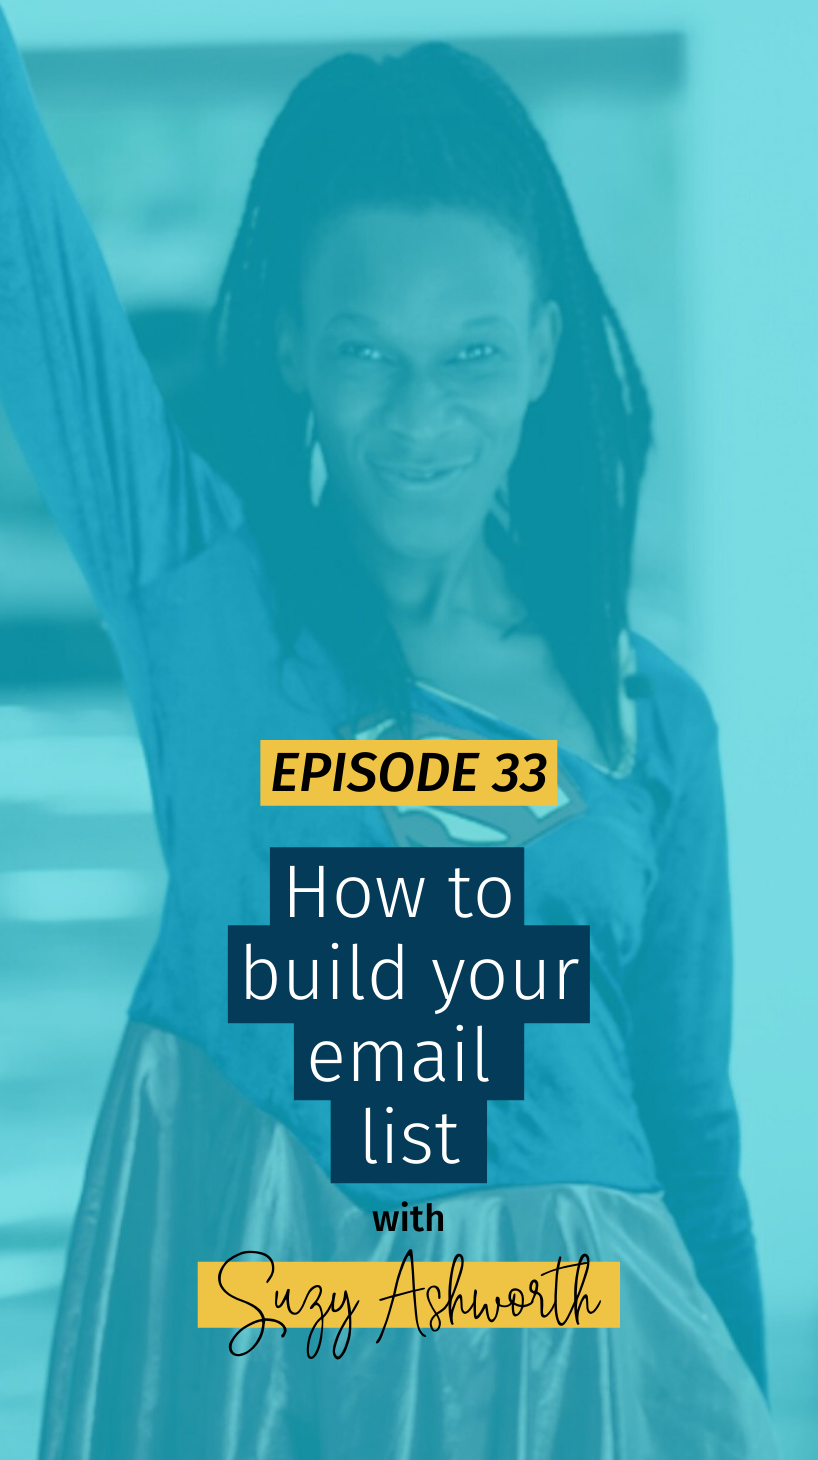 033 How to build your email list